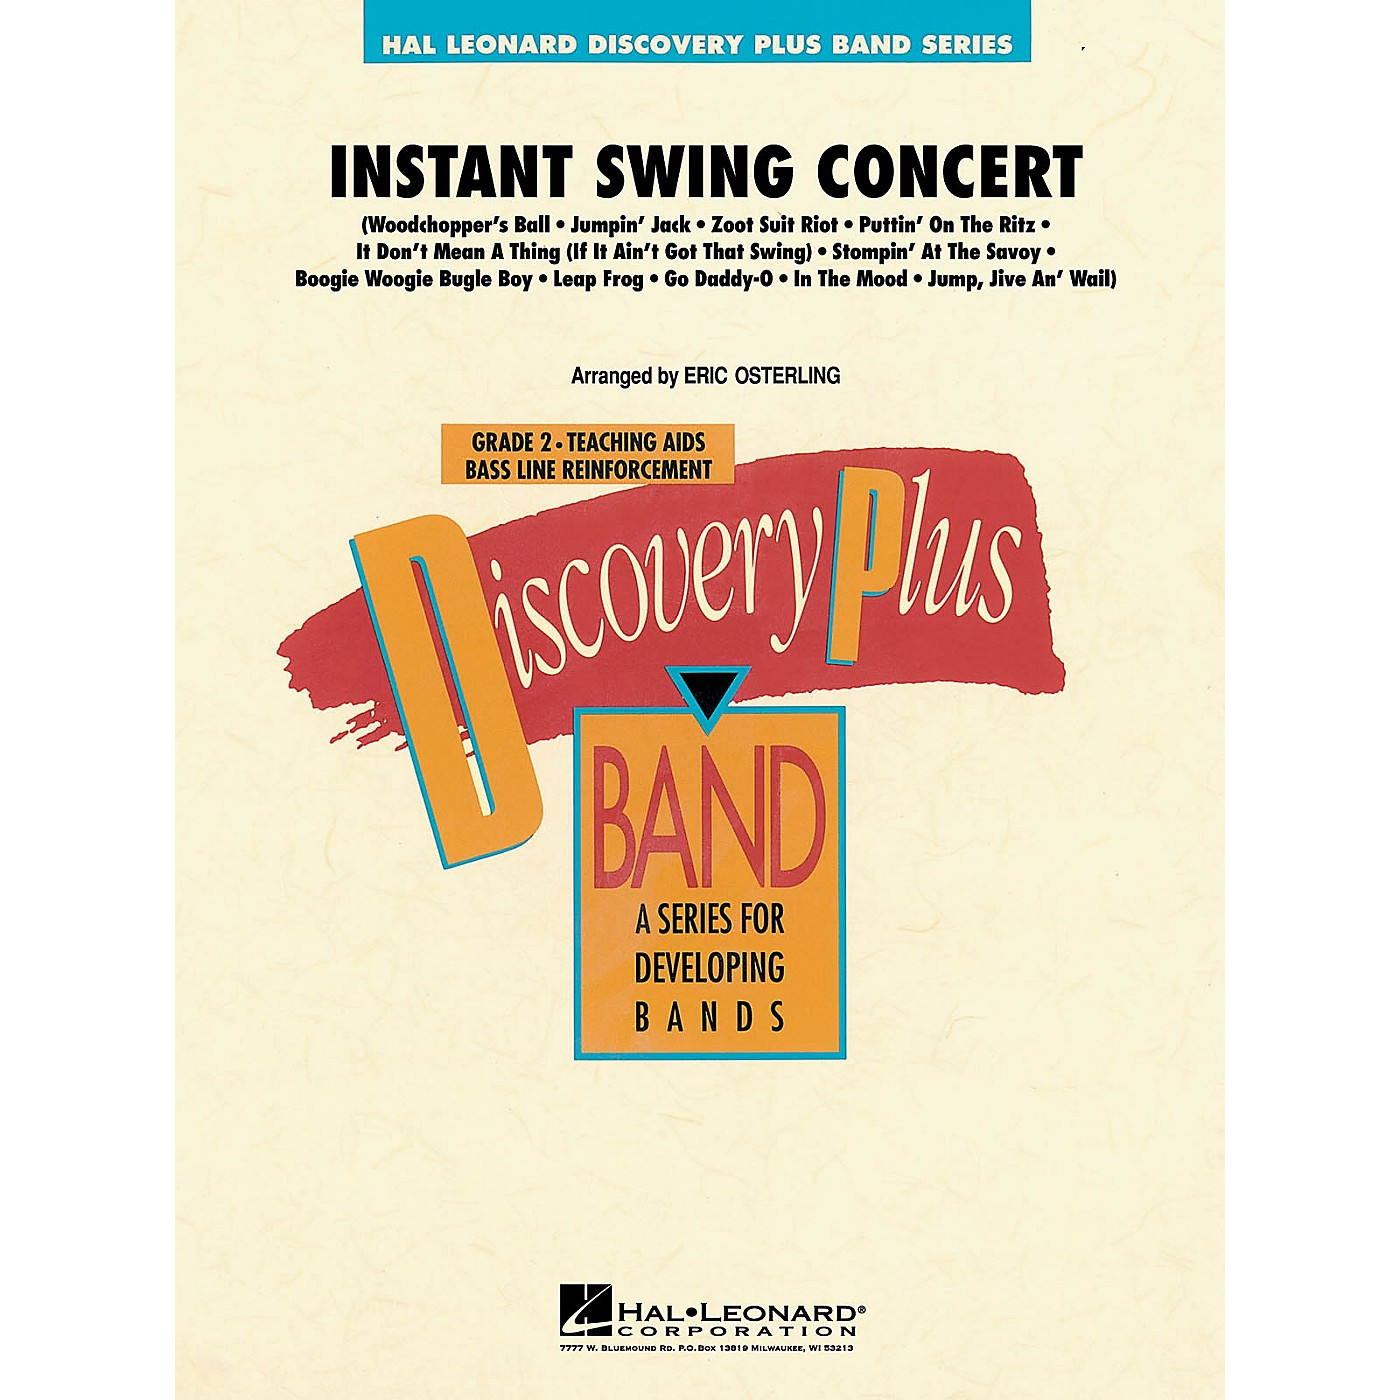 Hal Leonard Instant Swing Concert - Discovery Plus Concert Band Series Level 2 arranged by Eric Osterling thumbnail